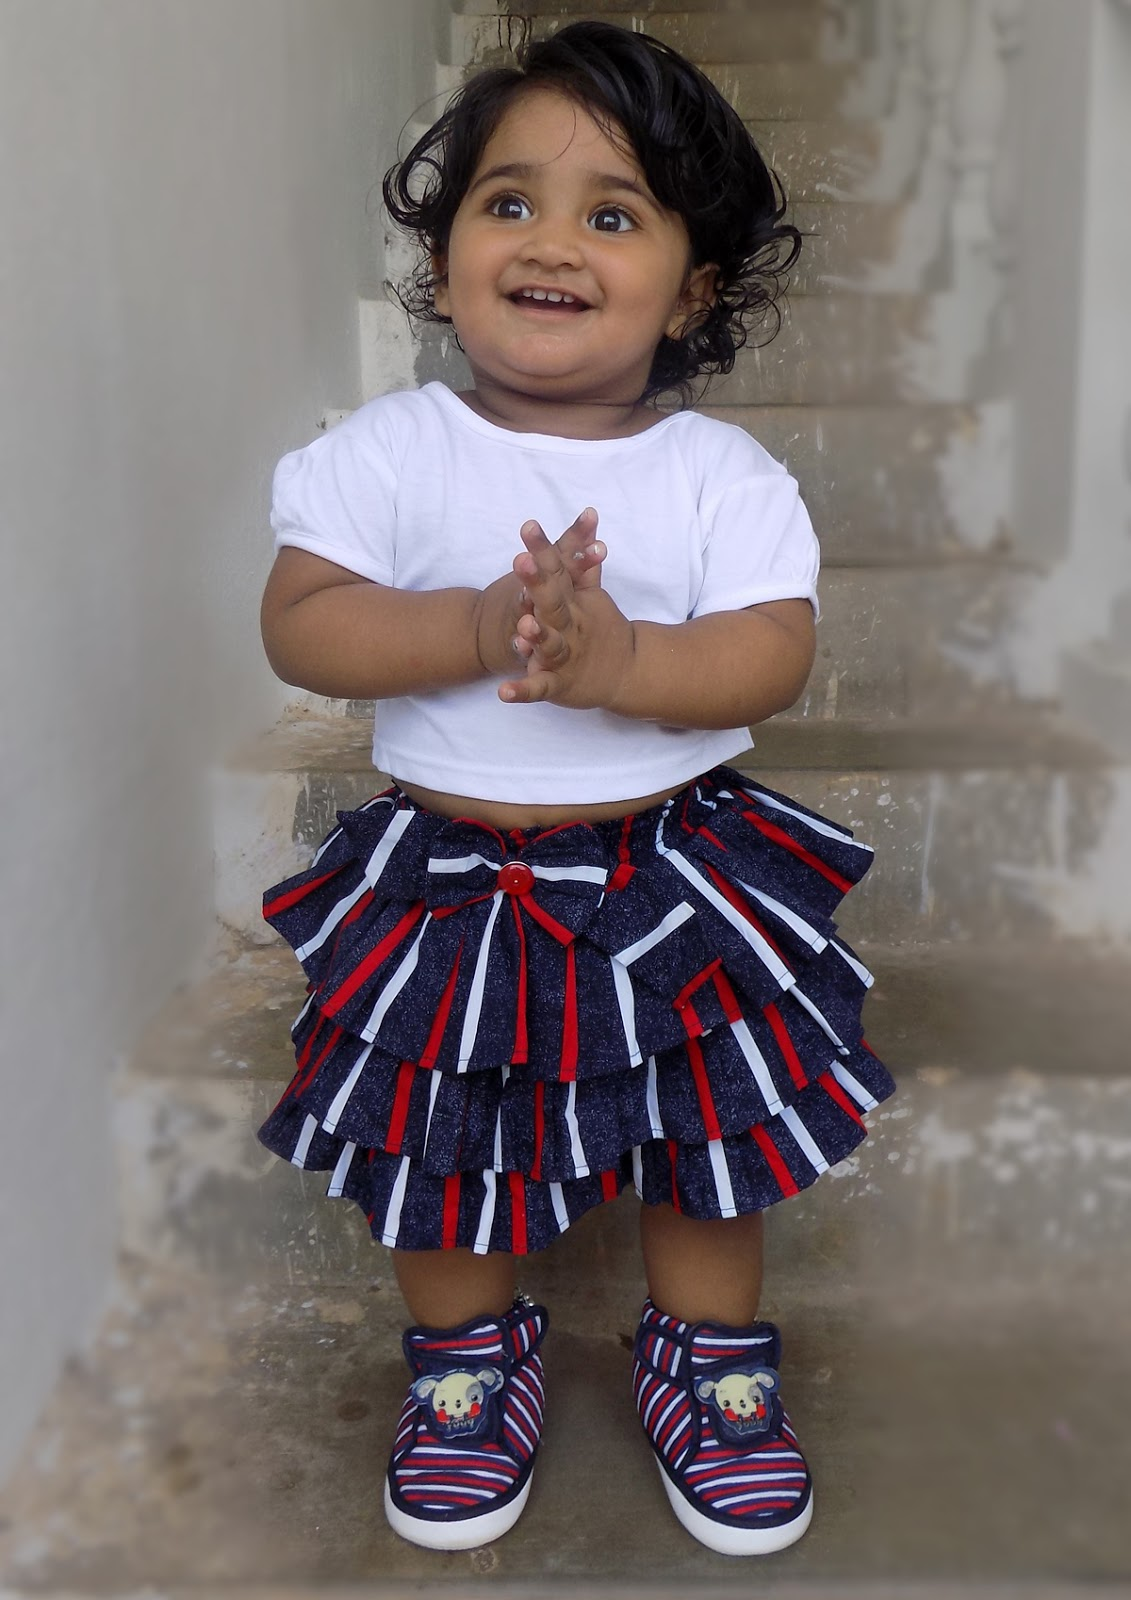 cute smile baby girl pictures-india-nainika raj: cute smile baby girl